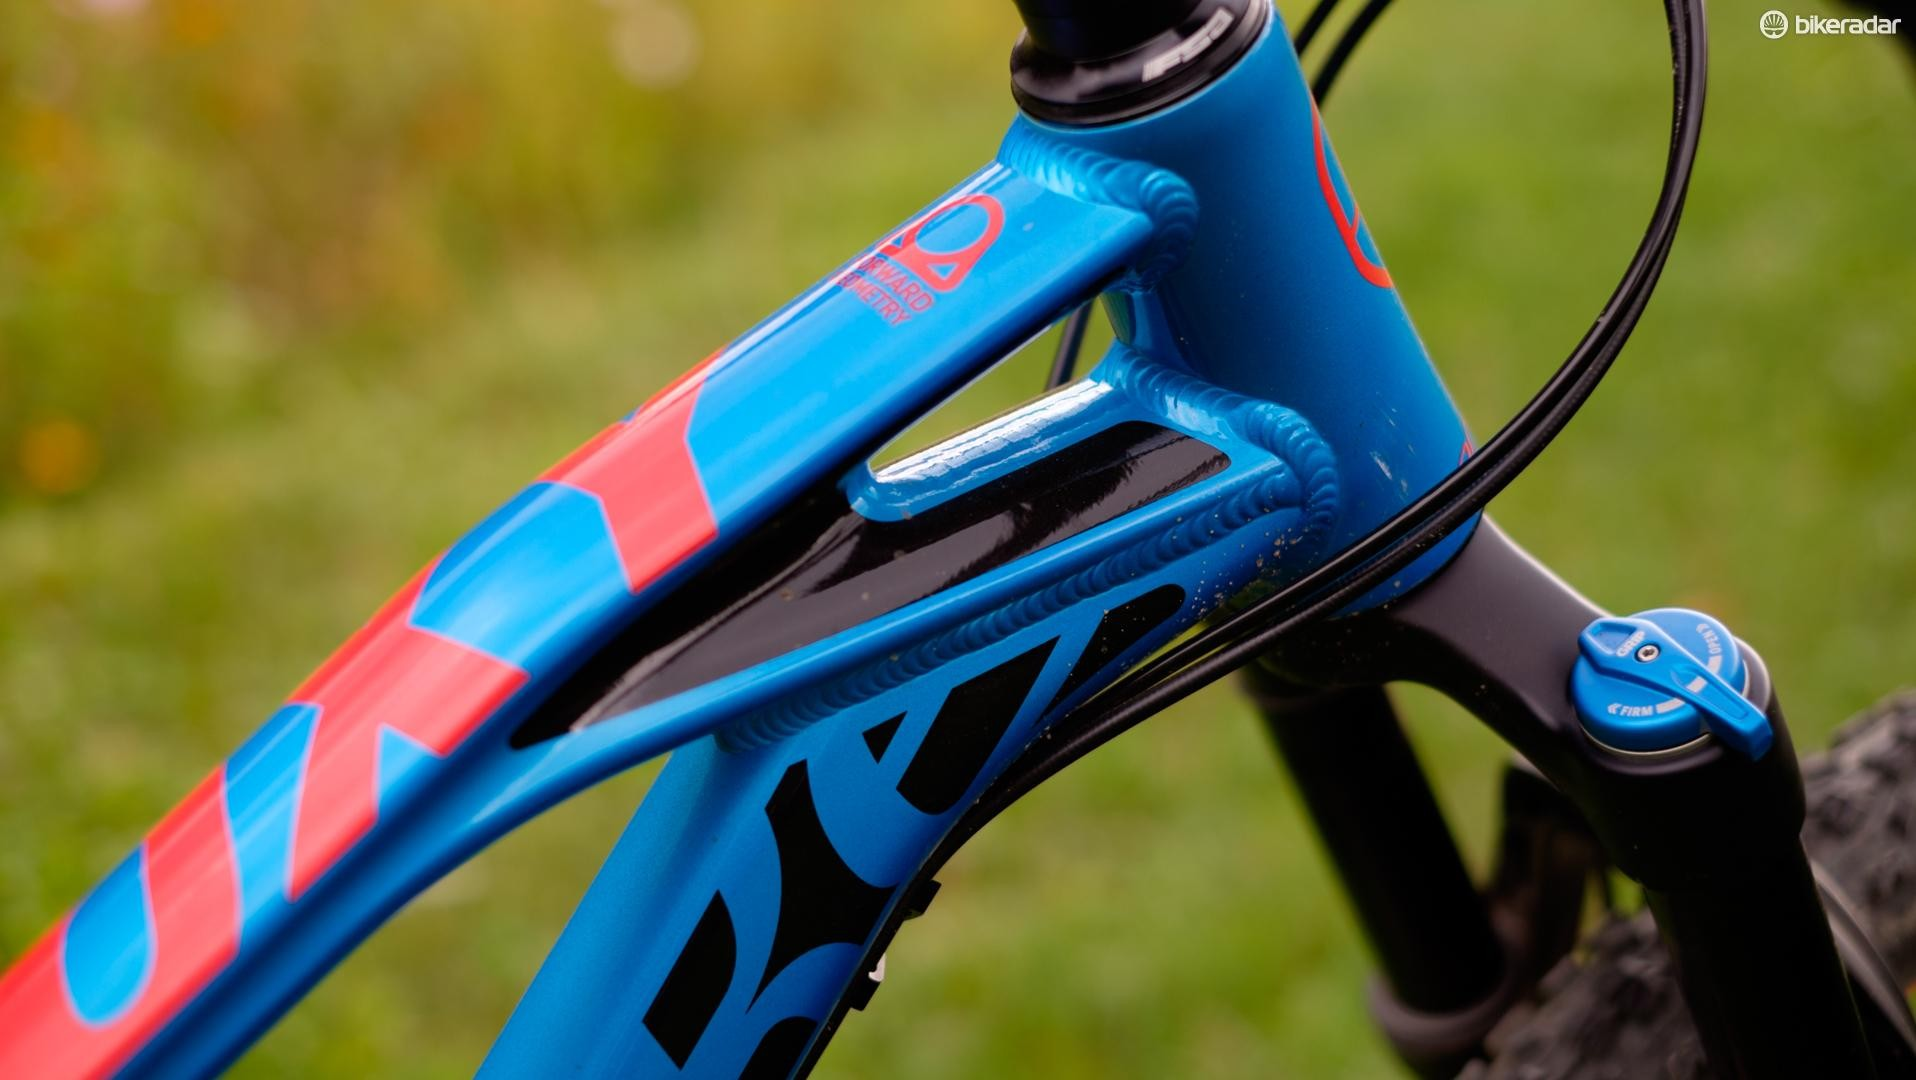 The top tube does a good job mimicking that of the carbon Foxy